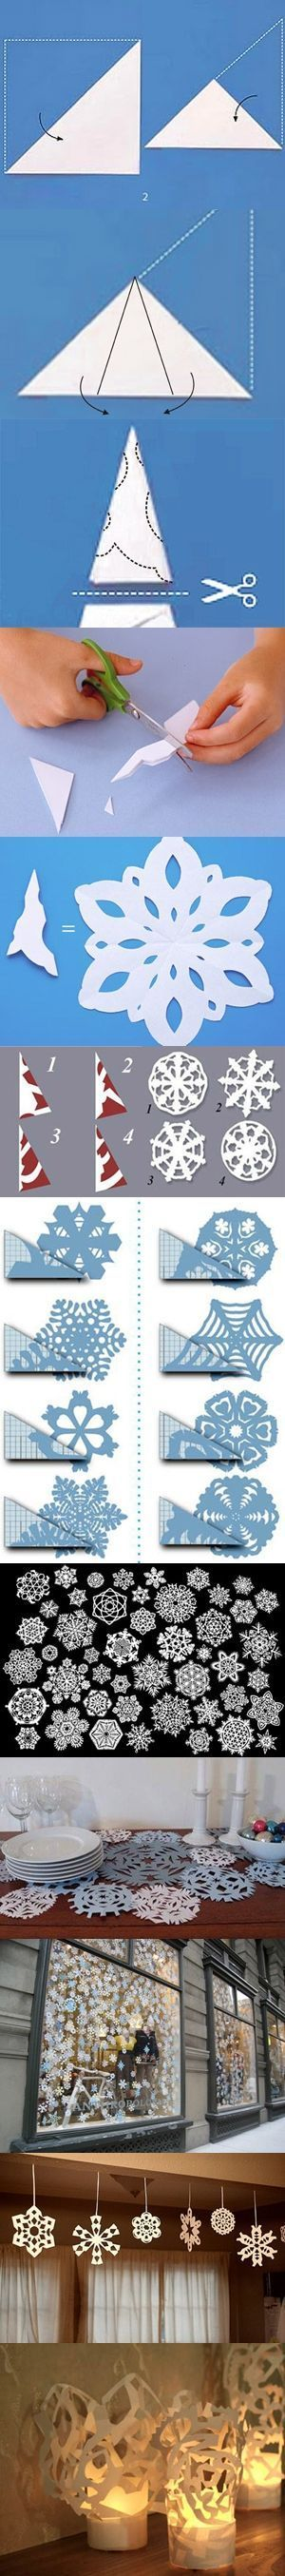 how to make paper snowflakes recipies to try pinterest